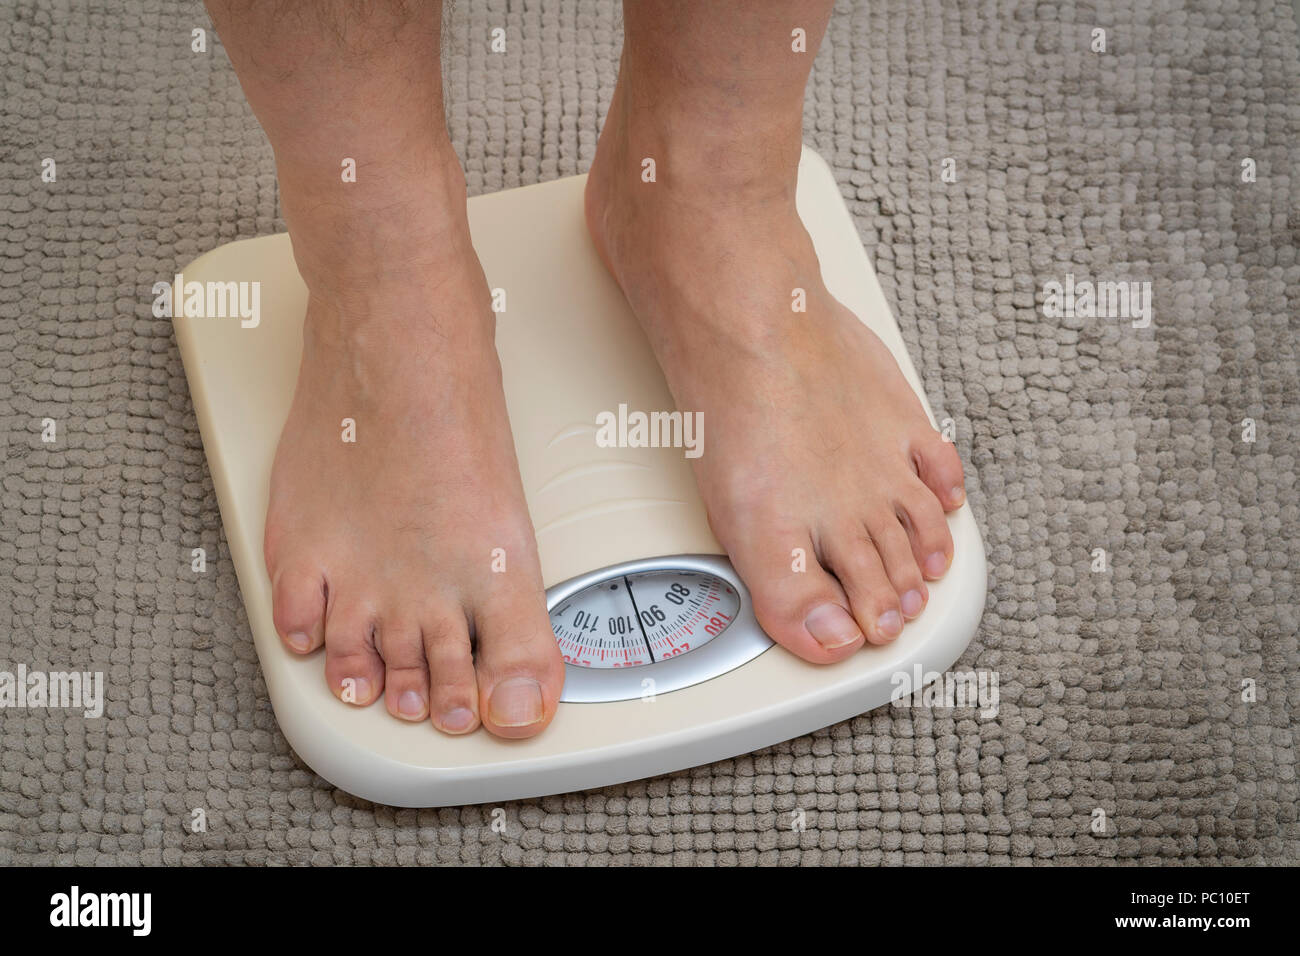 Cropped image of man feet standing on weigh scales, on the bathroom floor - Stock Image